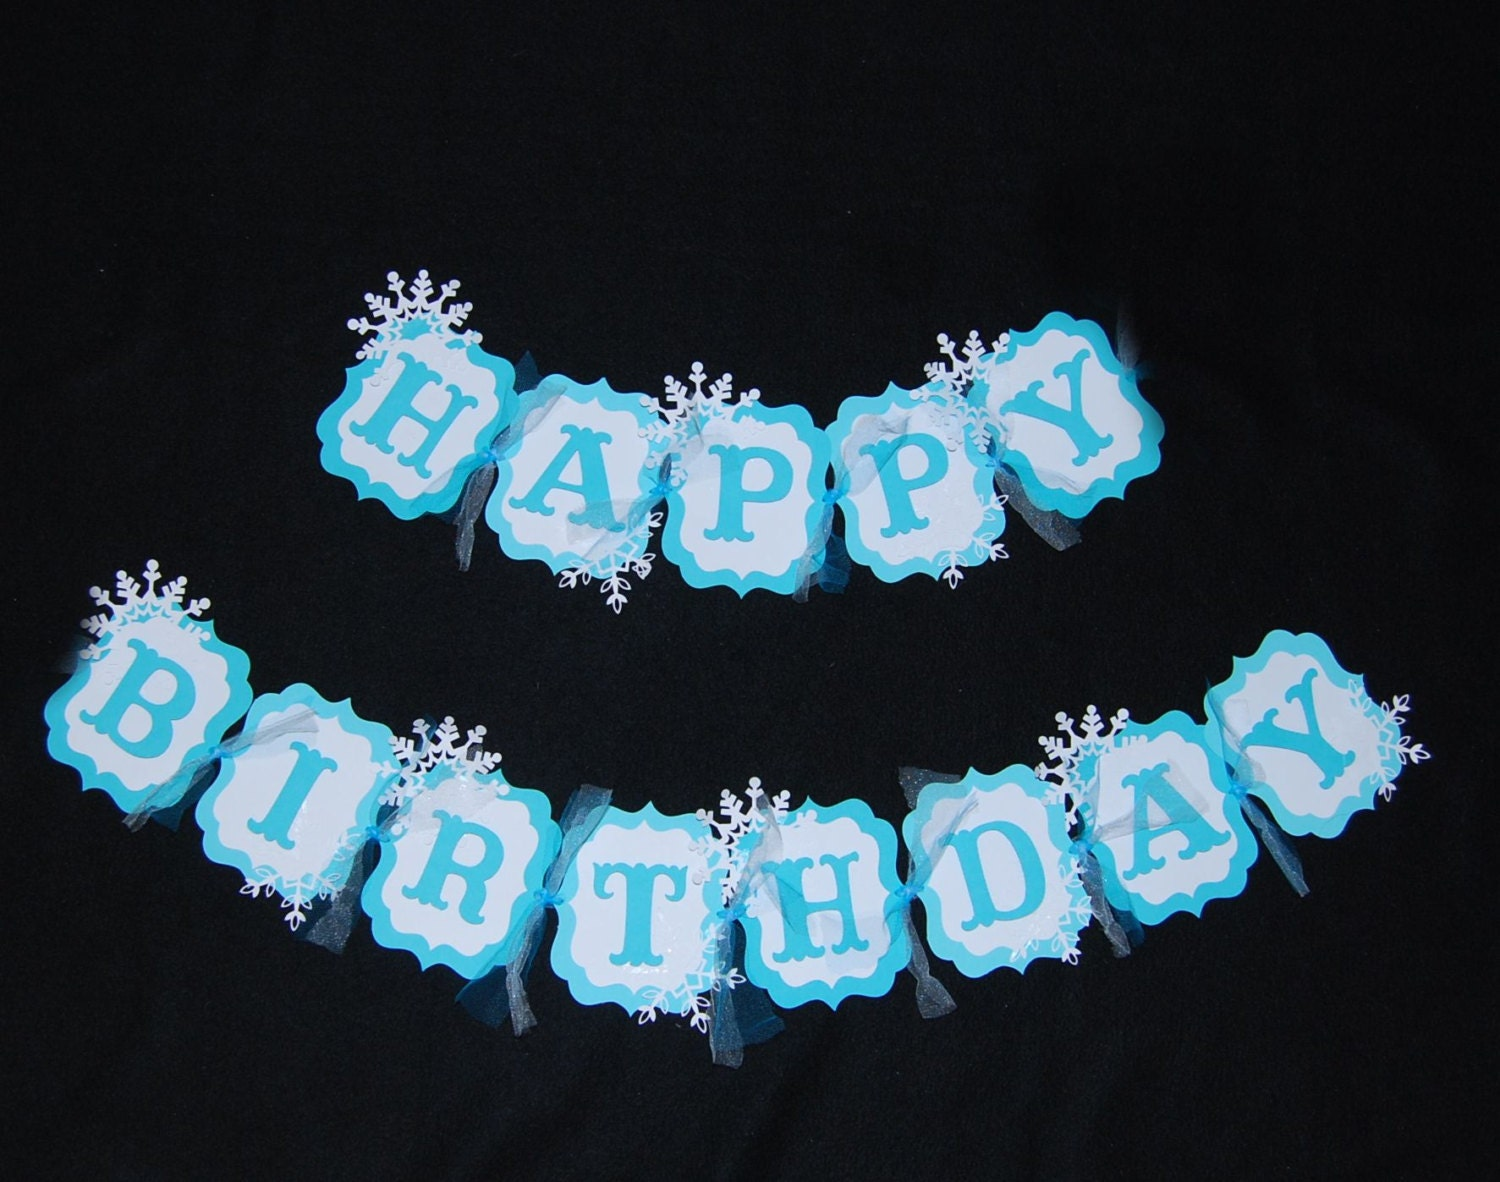 frozen themed snowflake happy birthday banner  snowflakes  blue